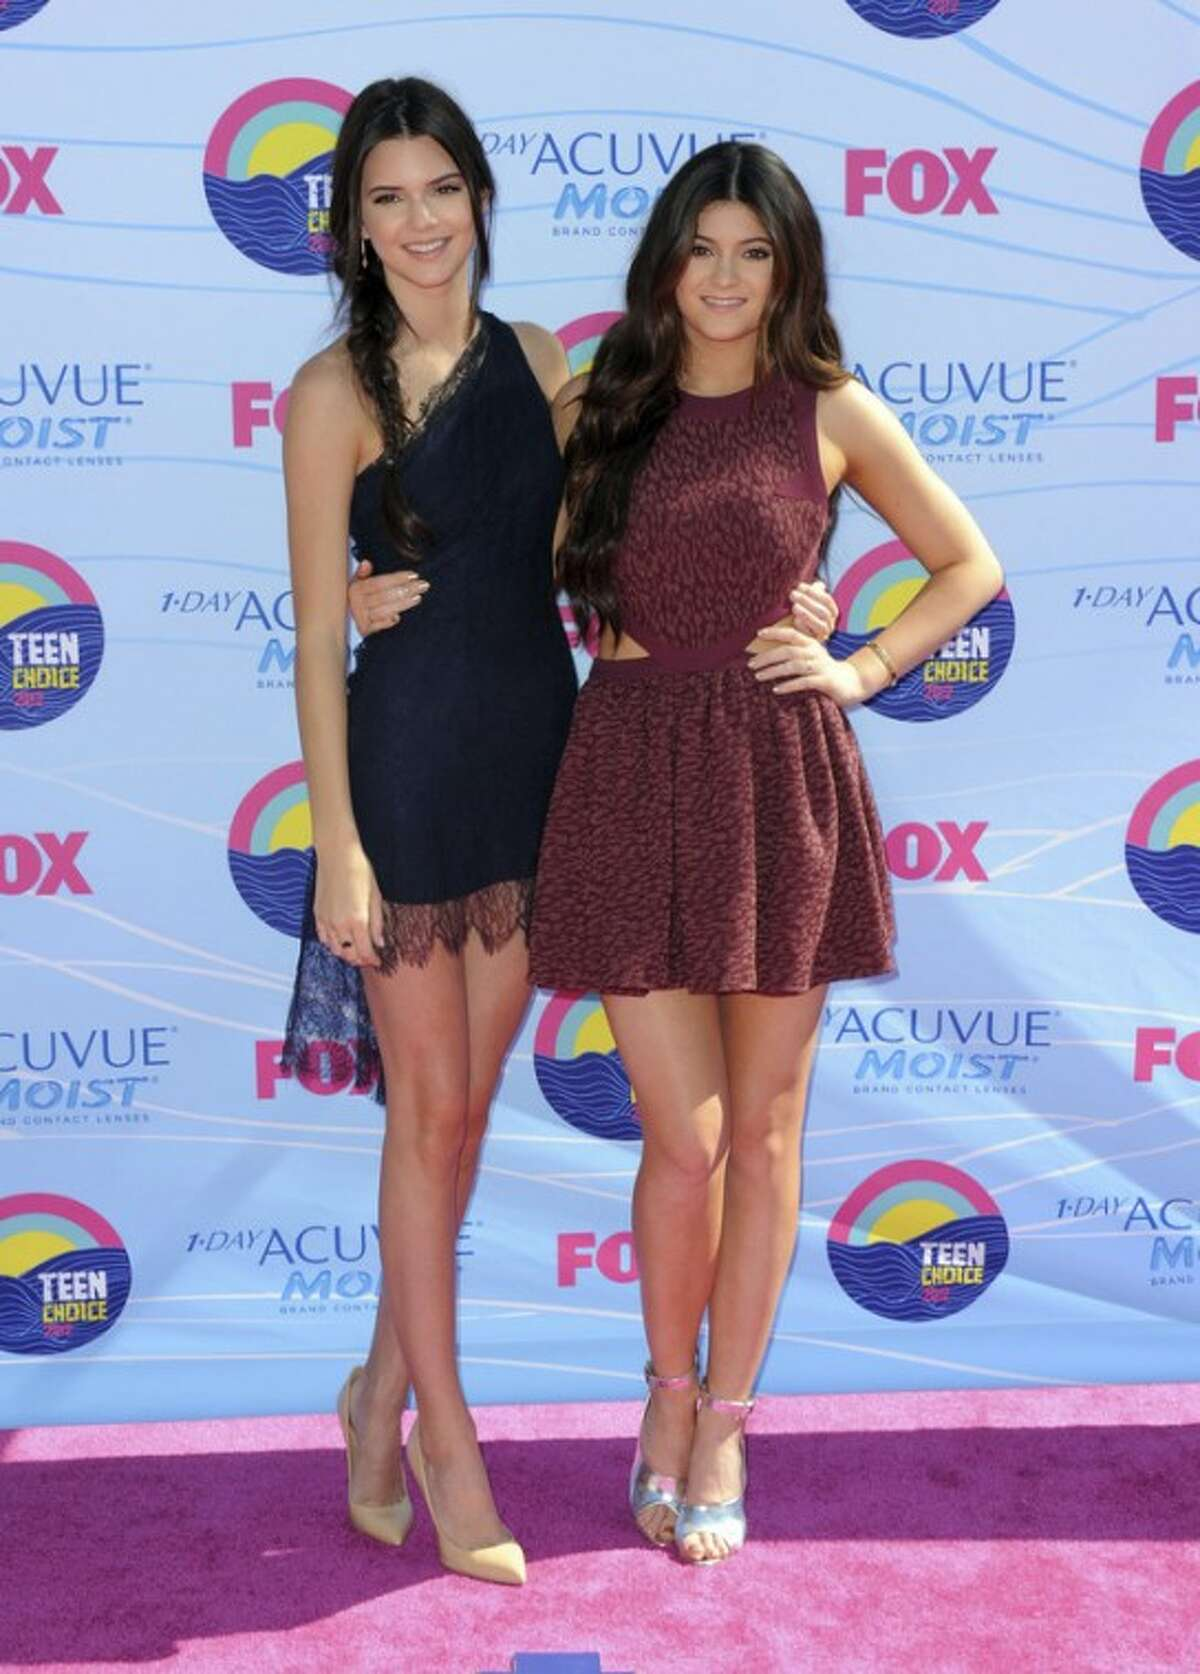 Kendall Jenner, left, and Kylie Jenner arrive at the Teen Choice Awards on Sunday, July 22, 2012, in Universal City, Calif. (Photo by Jordan Strauss/Invision/AP)